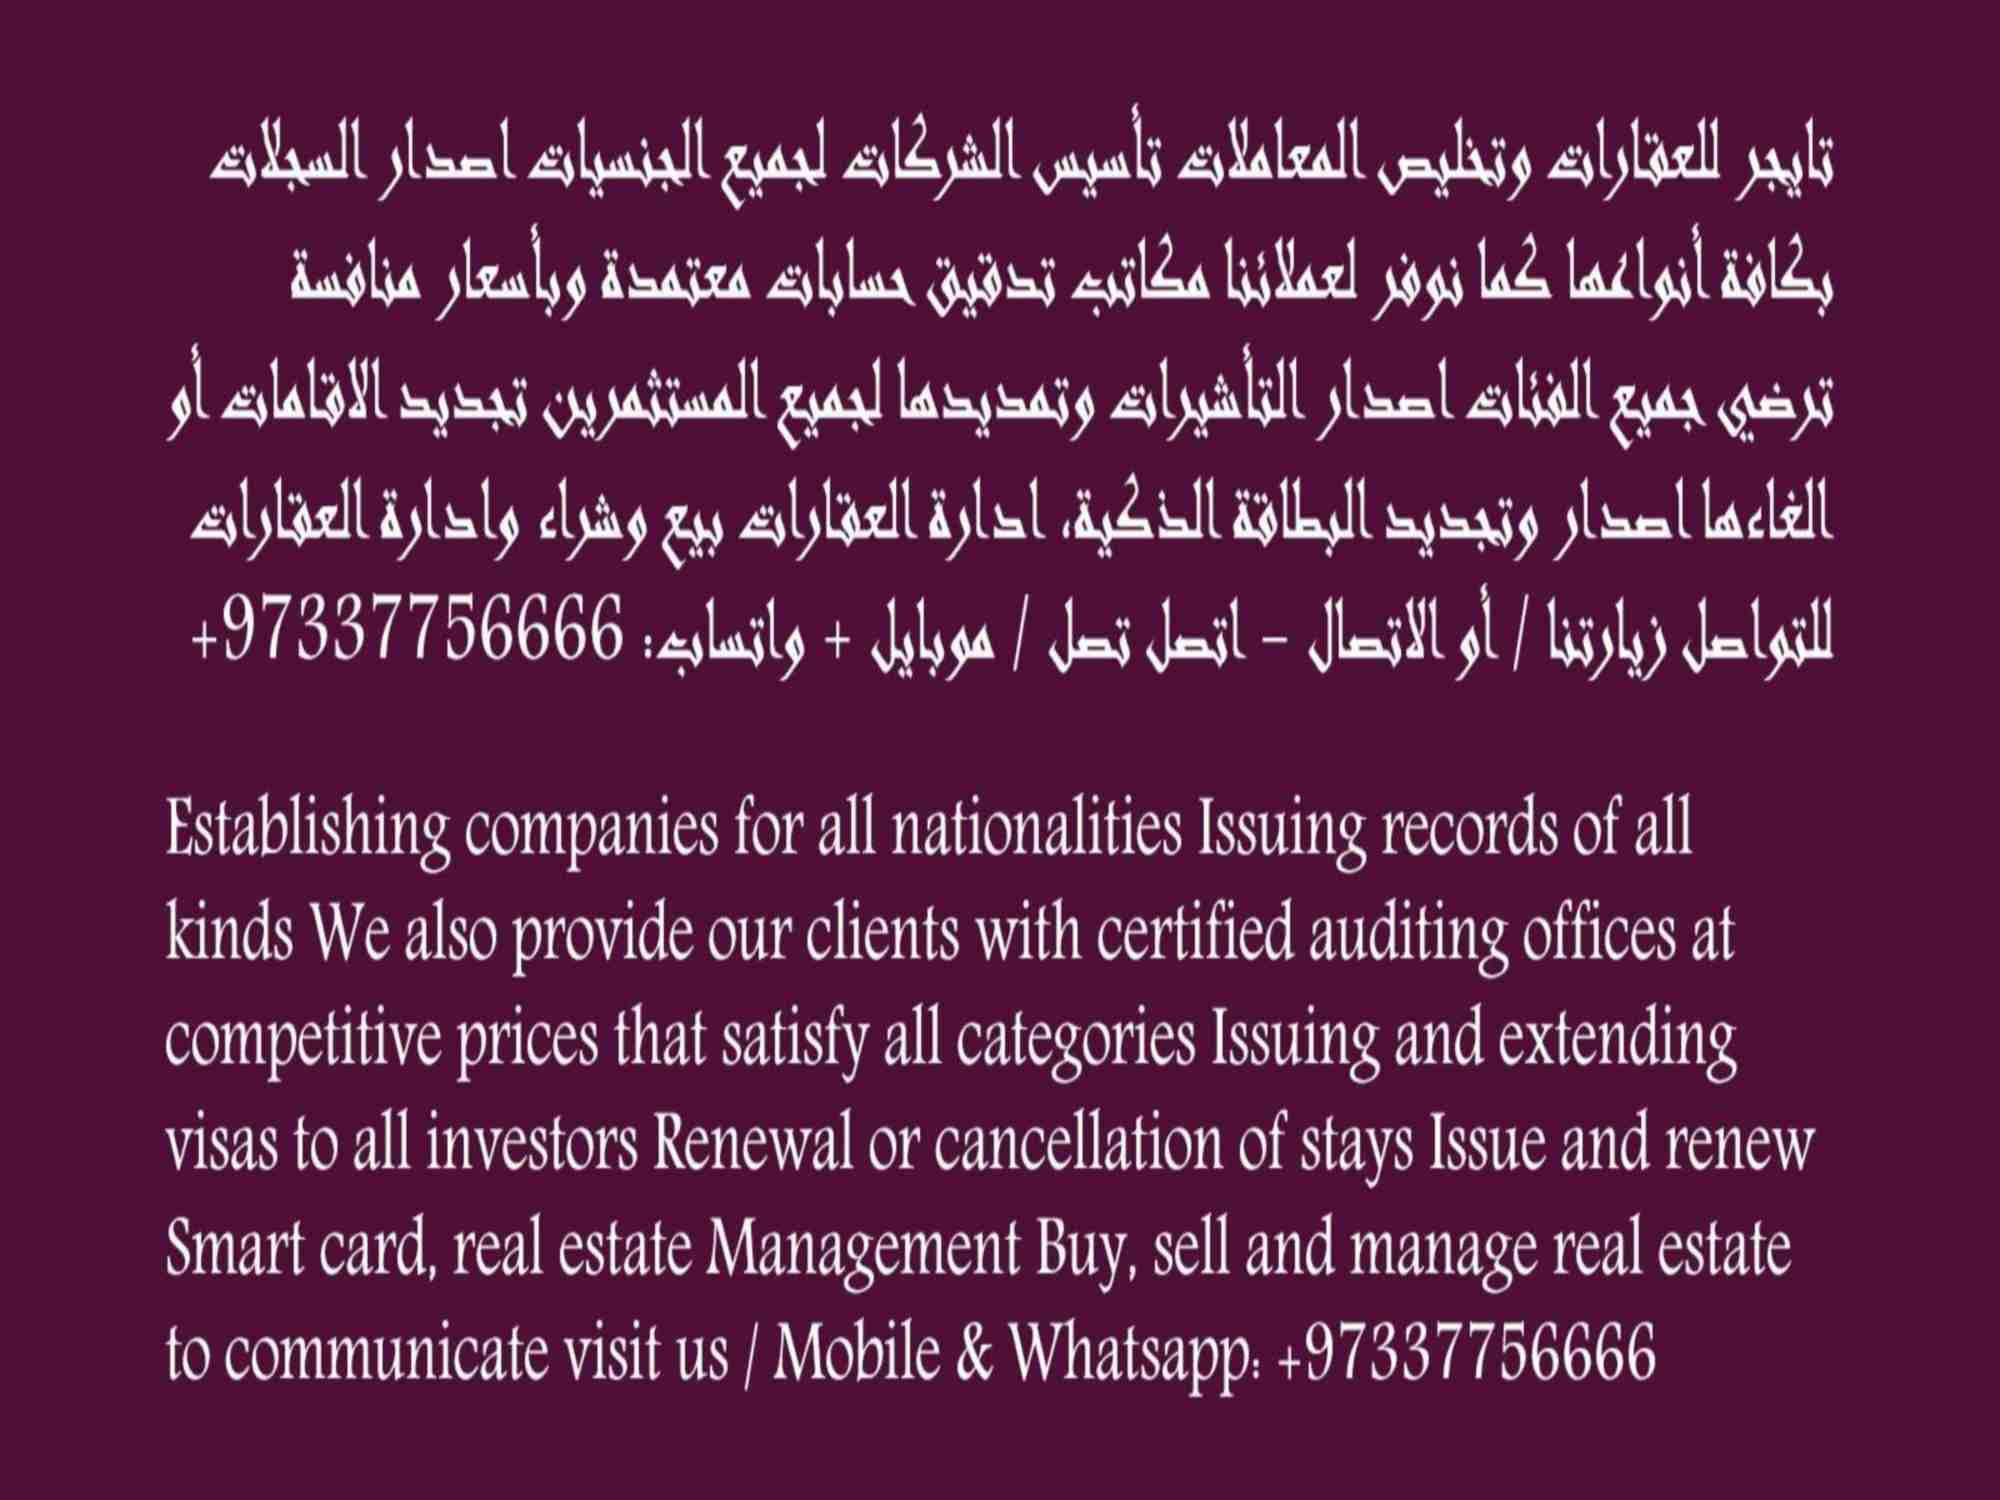 Are you looking for a loan to clear off your dept and start up your own Business? have you being going all over yet not able to get a legit loan Company that wi-  تأسيس شركات لجميع...